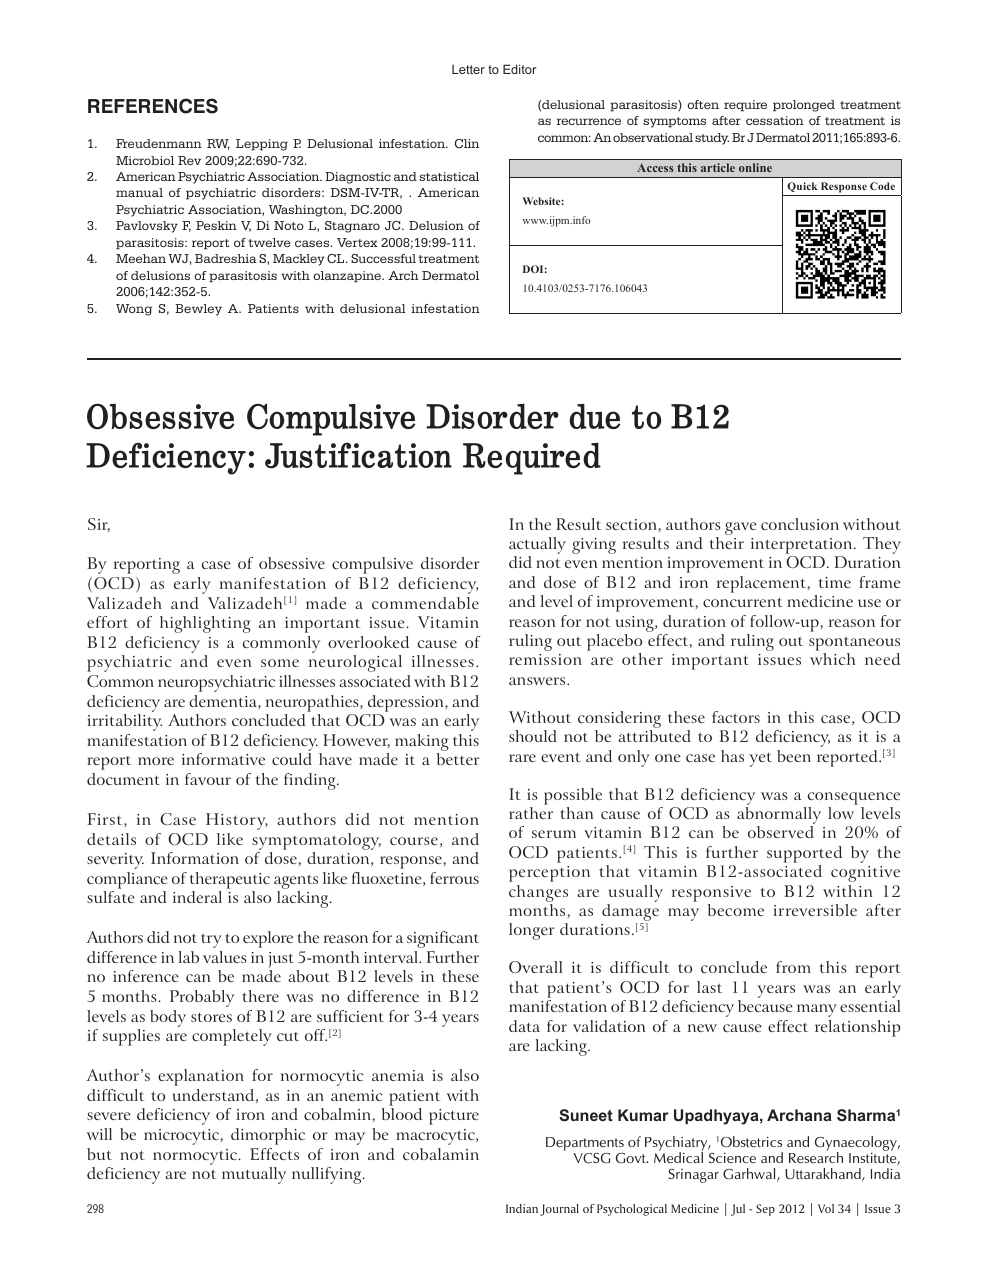 Obsessive compulsive disorder due to B12 deficiency: Justification